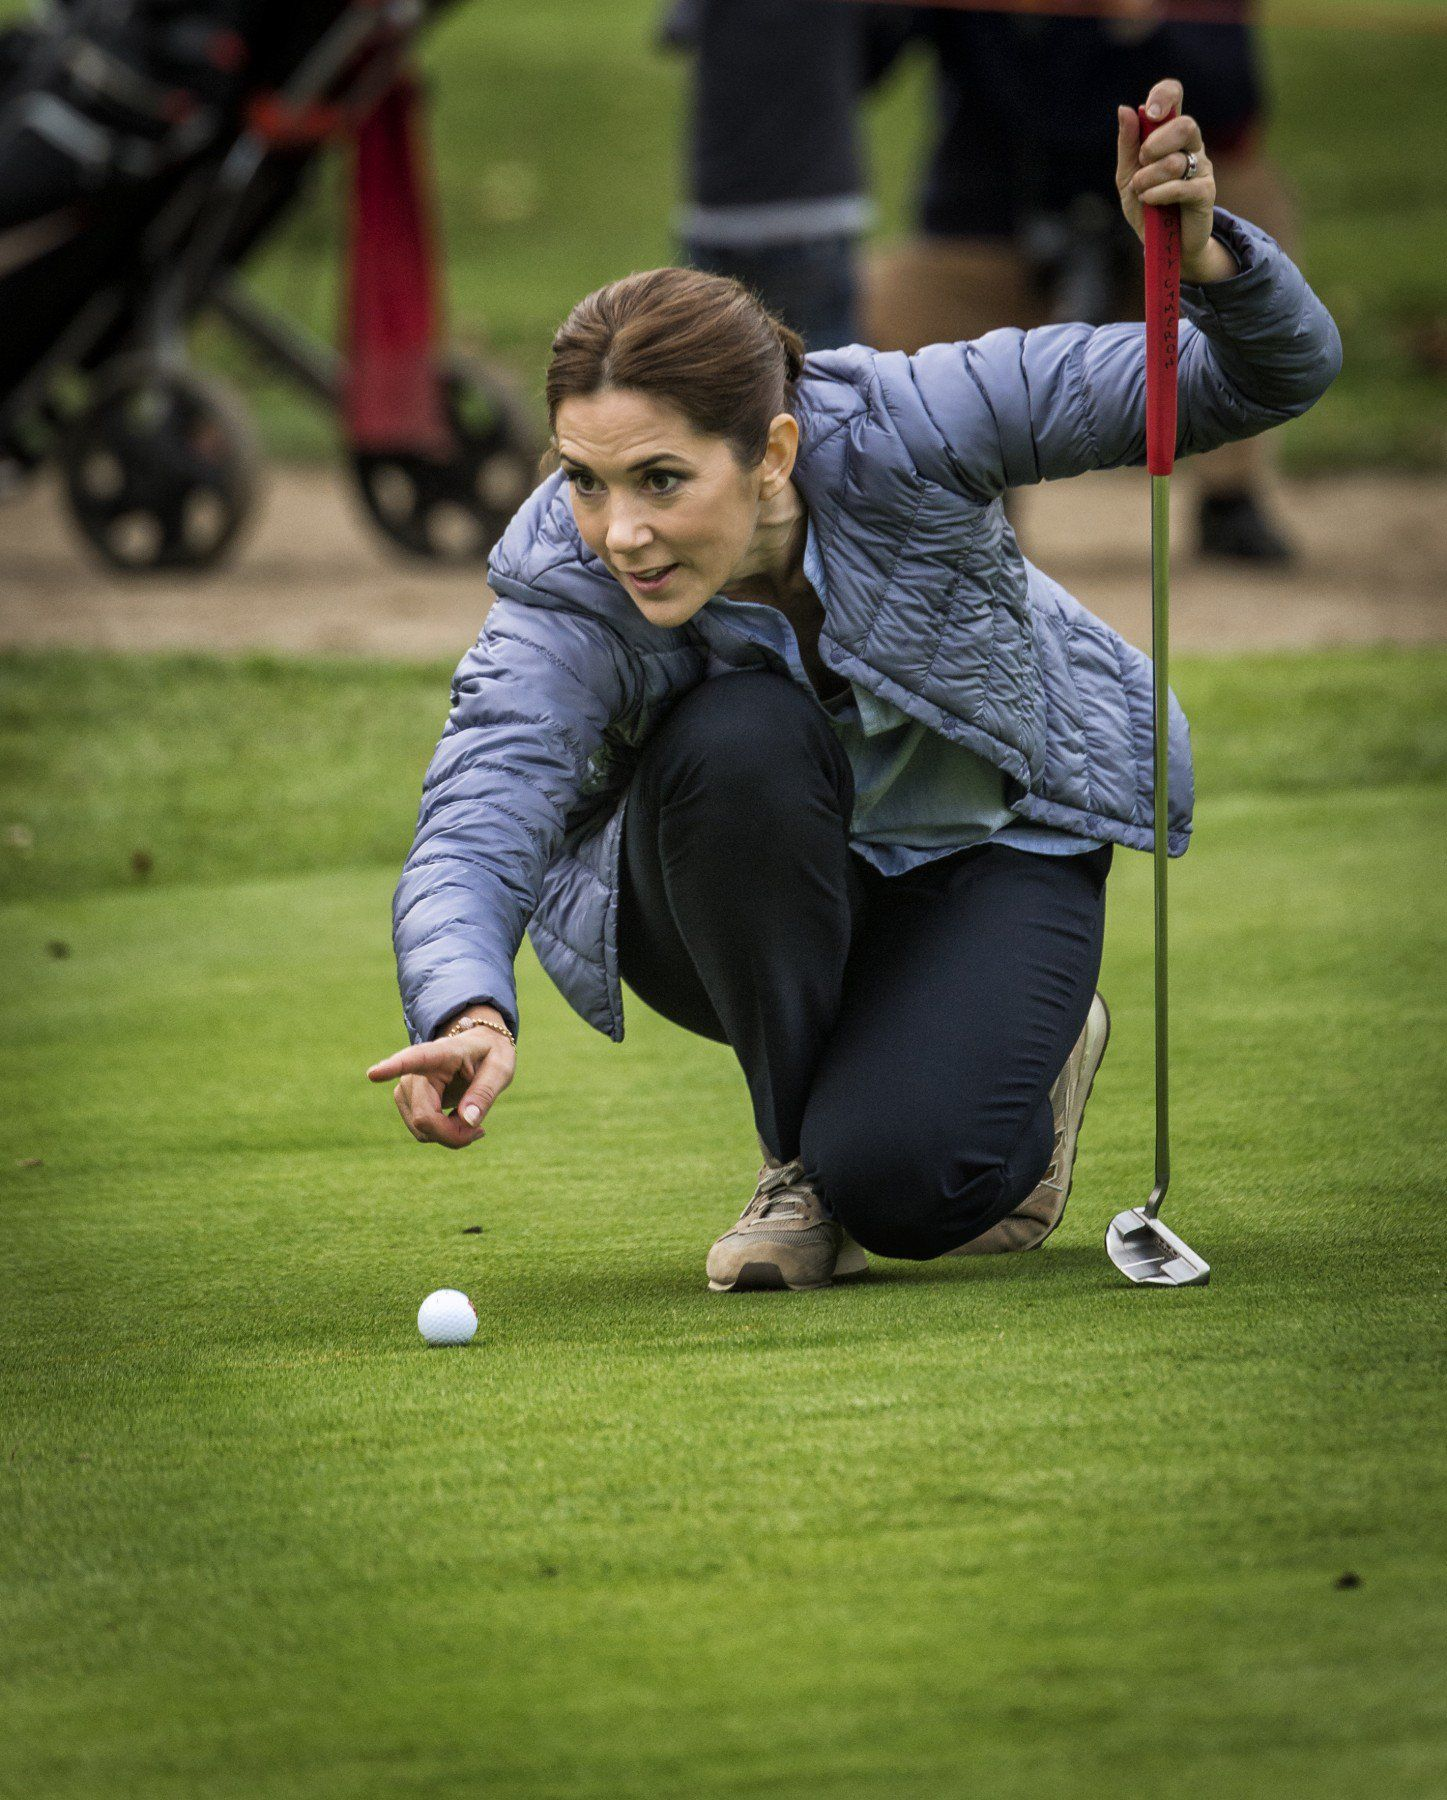 Princess Mary Attended An Awards Ceremony In A Club In Junior Golf Asserbo Prinses Mary Prinses